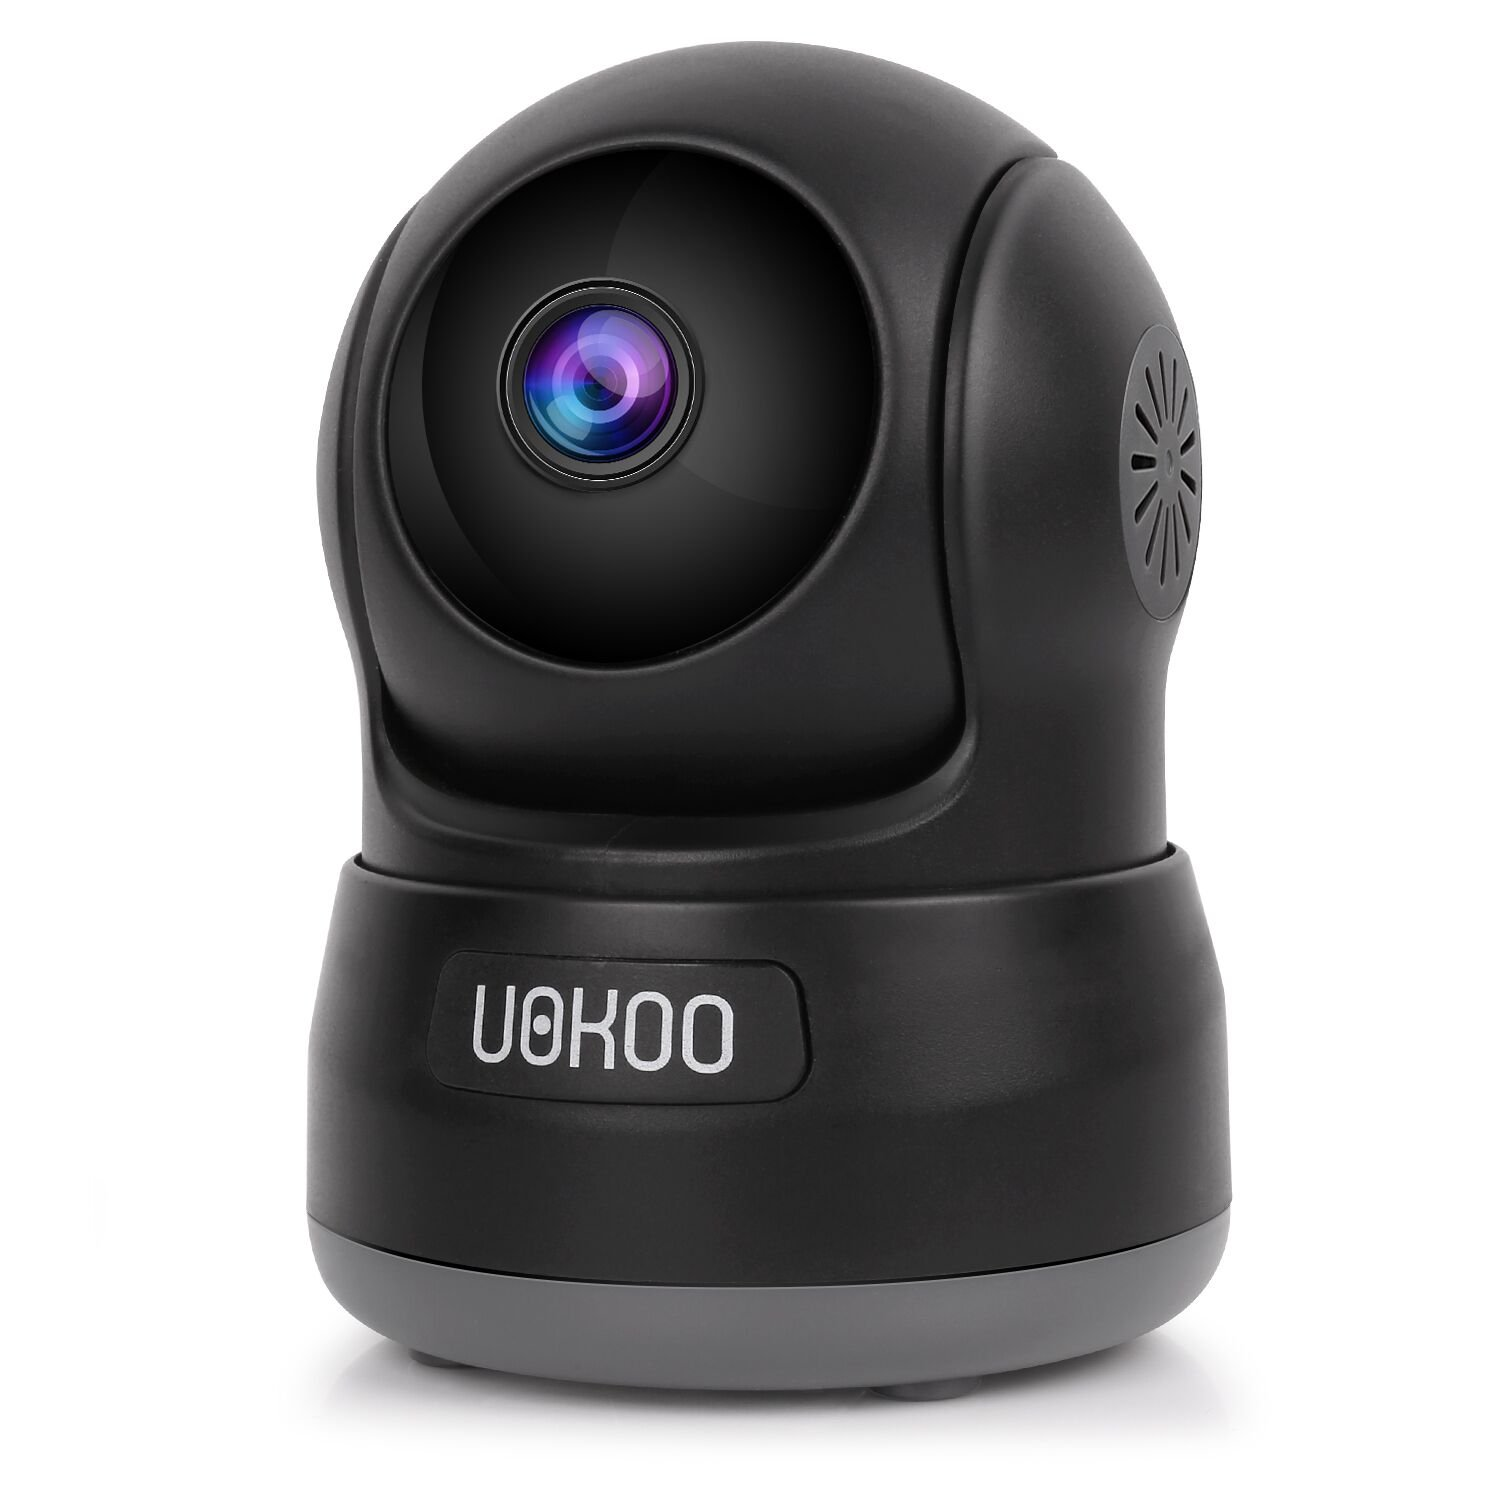 Wireless IP Camera, Home Security Surveillance Video Camera with Two Way Audio, 720P Pan/Tilt Night Vision Baby Monitor, Nanny Cam